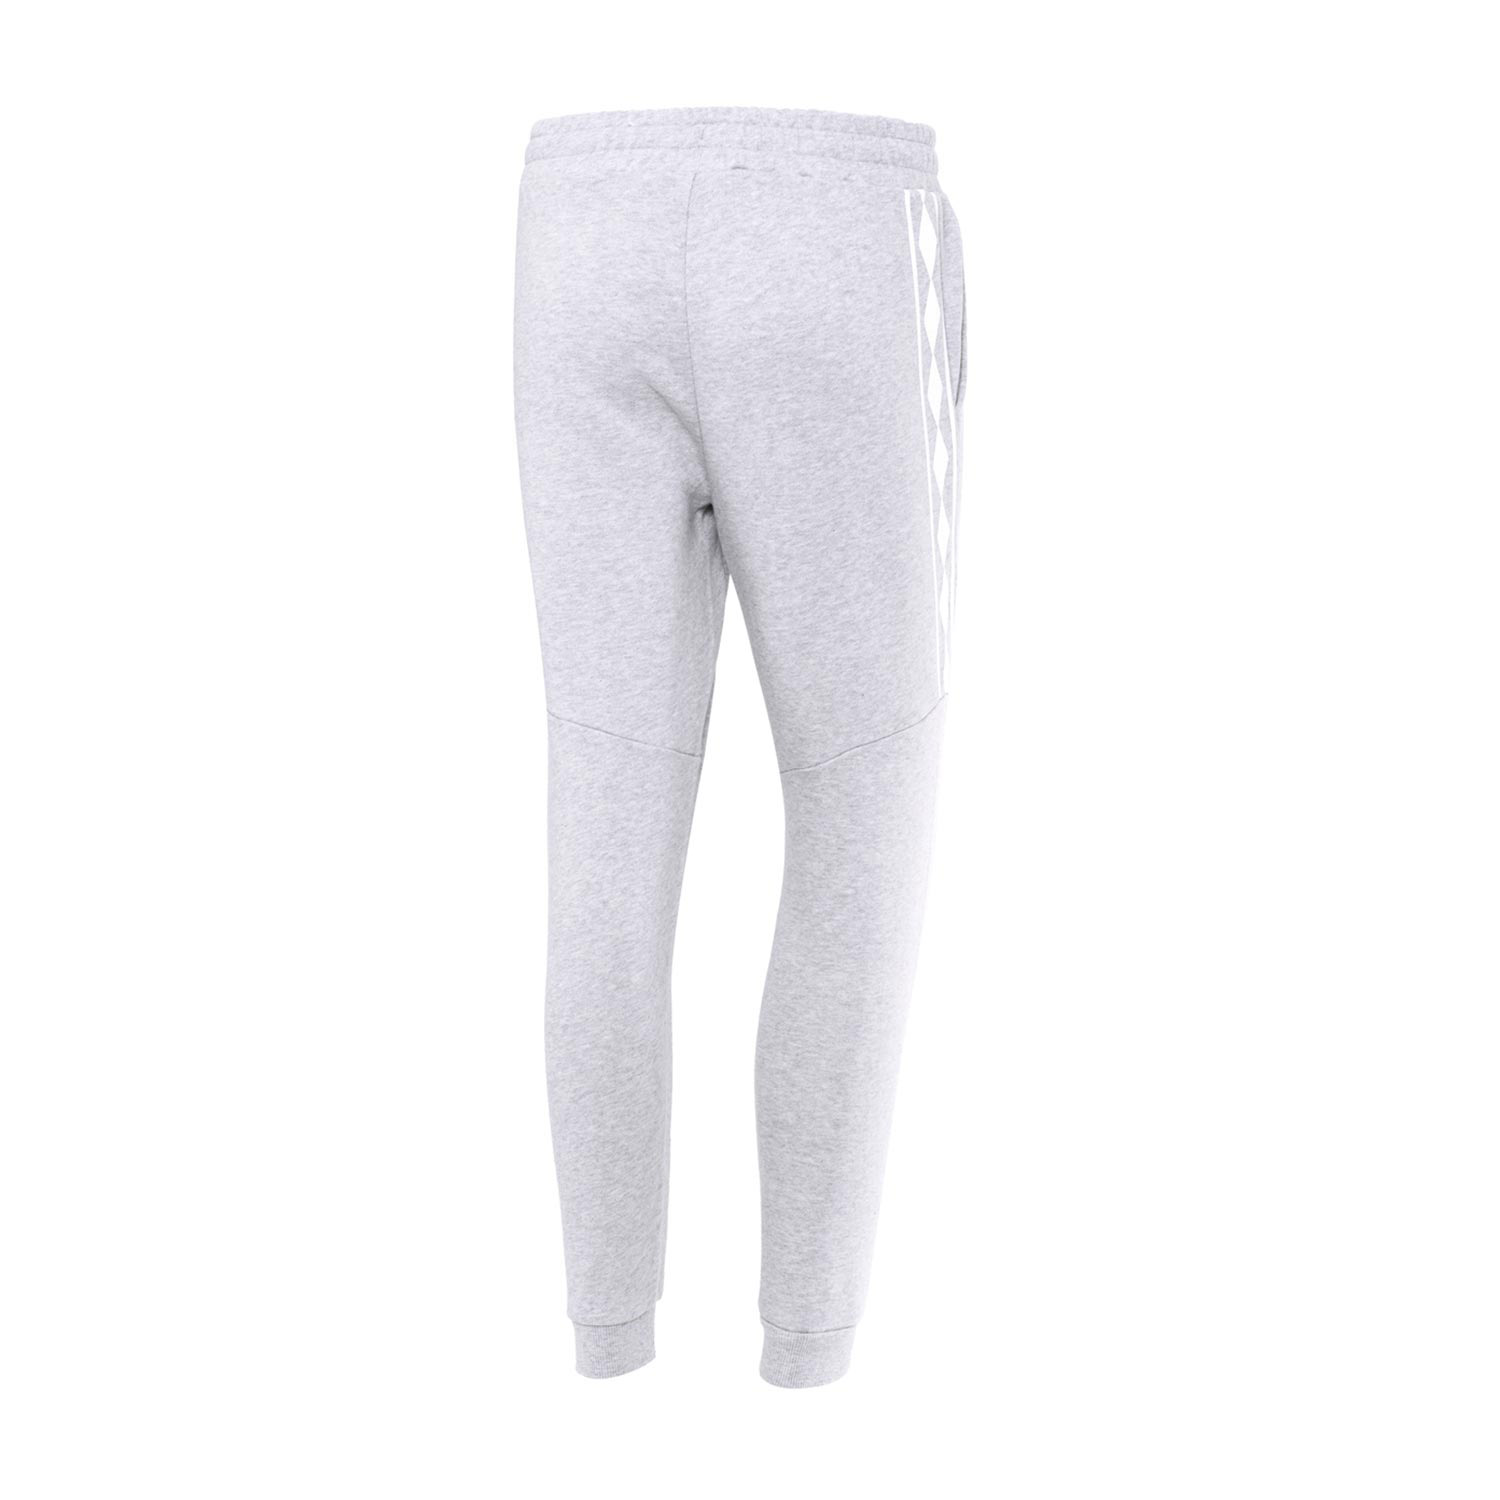 jeans joe pants joes style comfortable brands trends ever most thefashionspot comforter s top designed